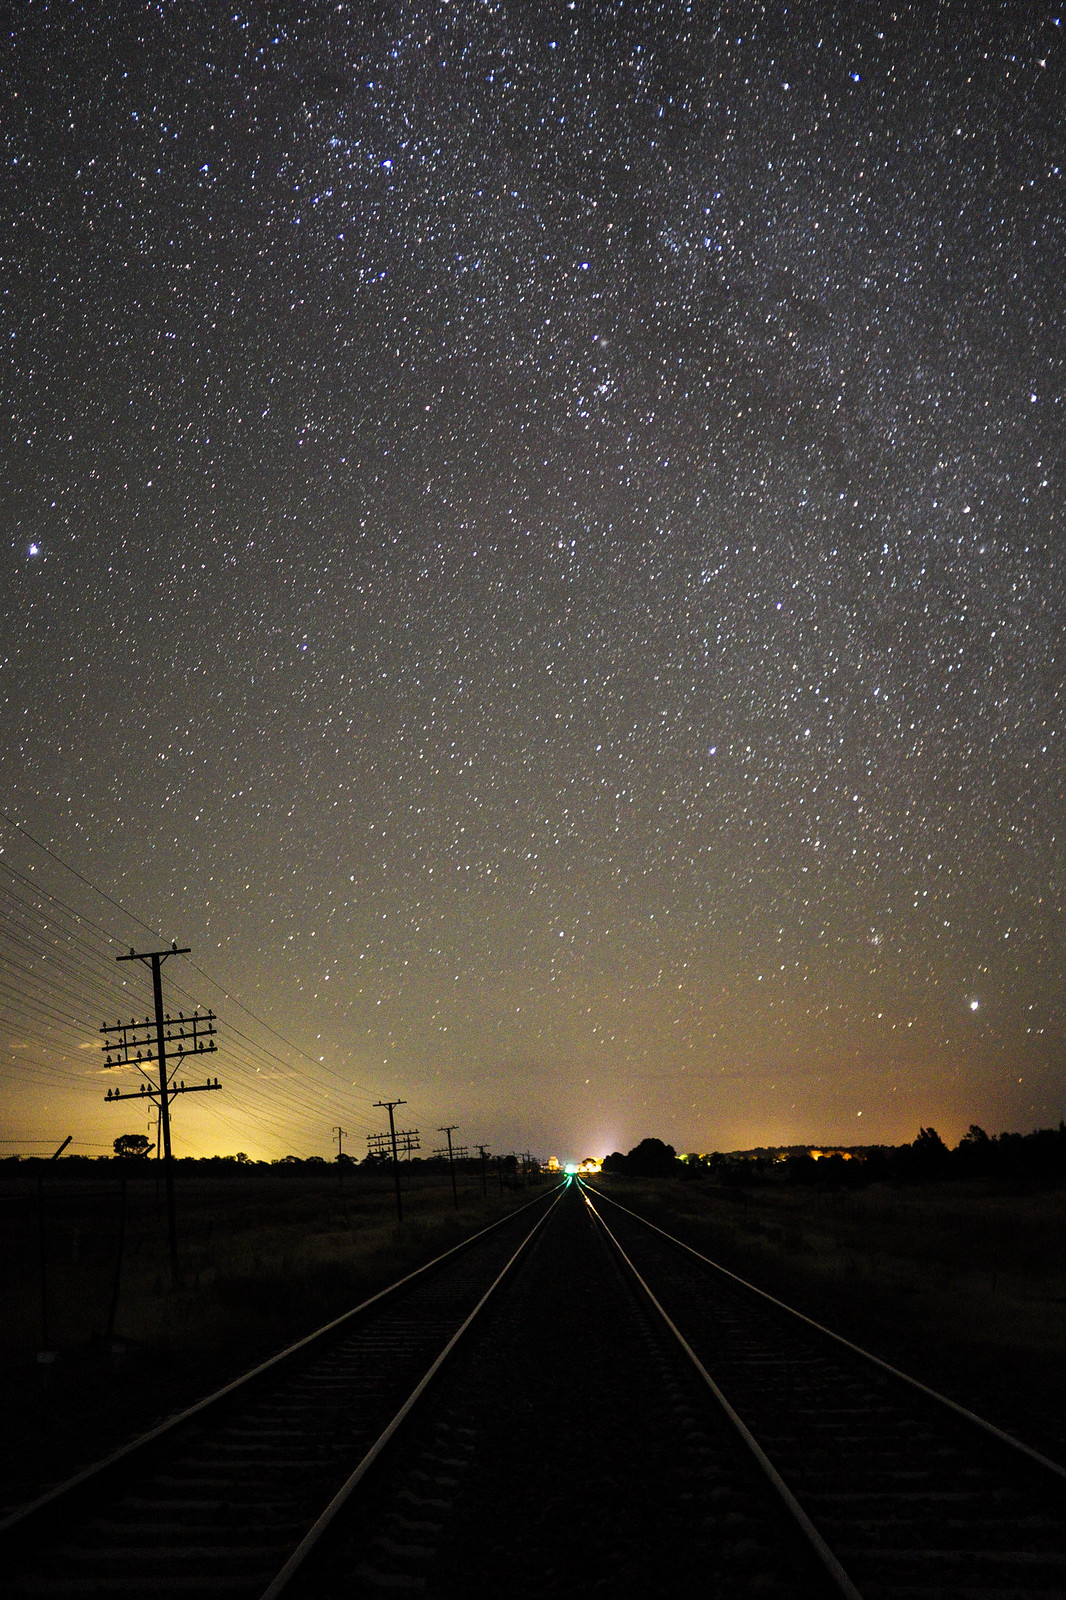 Rails under the stars by phil martin